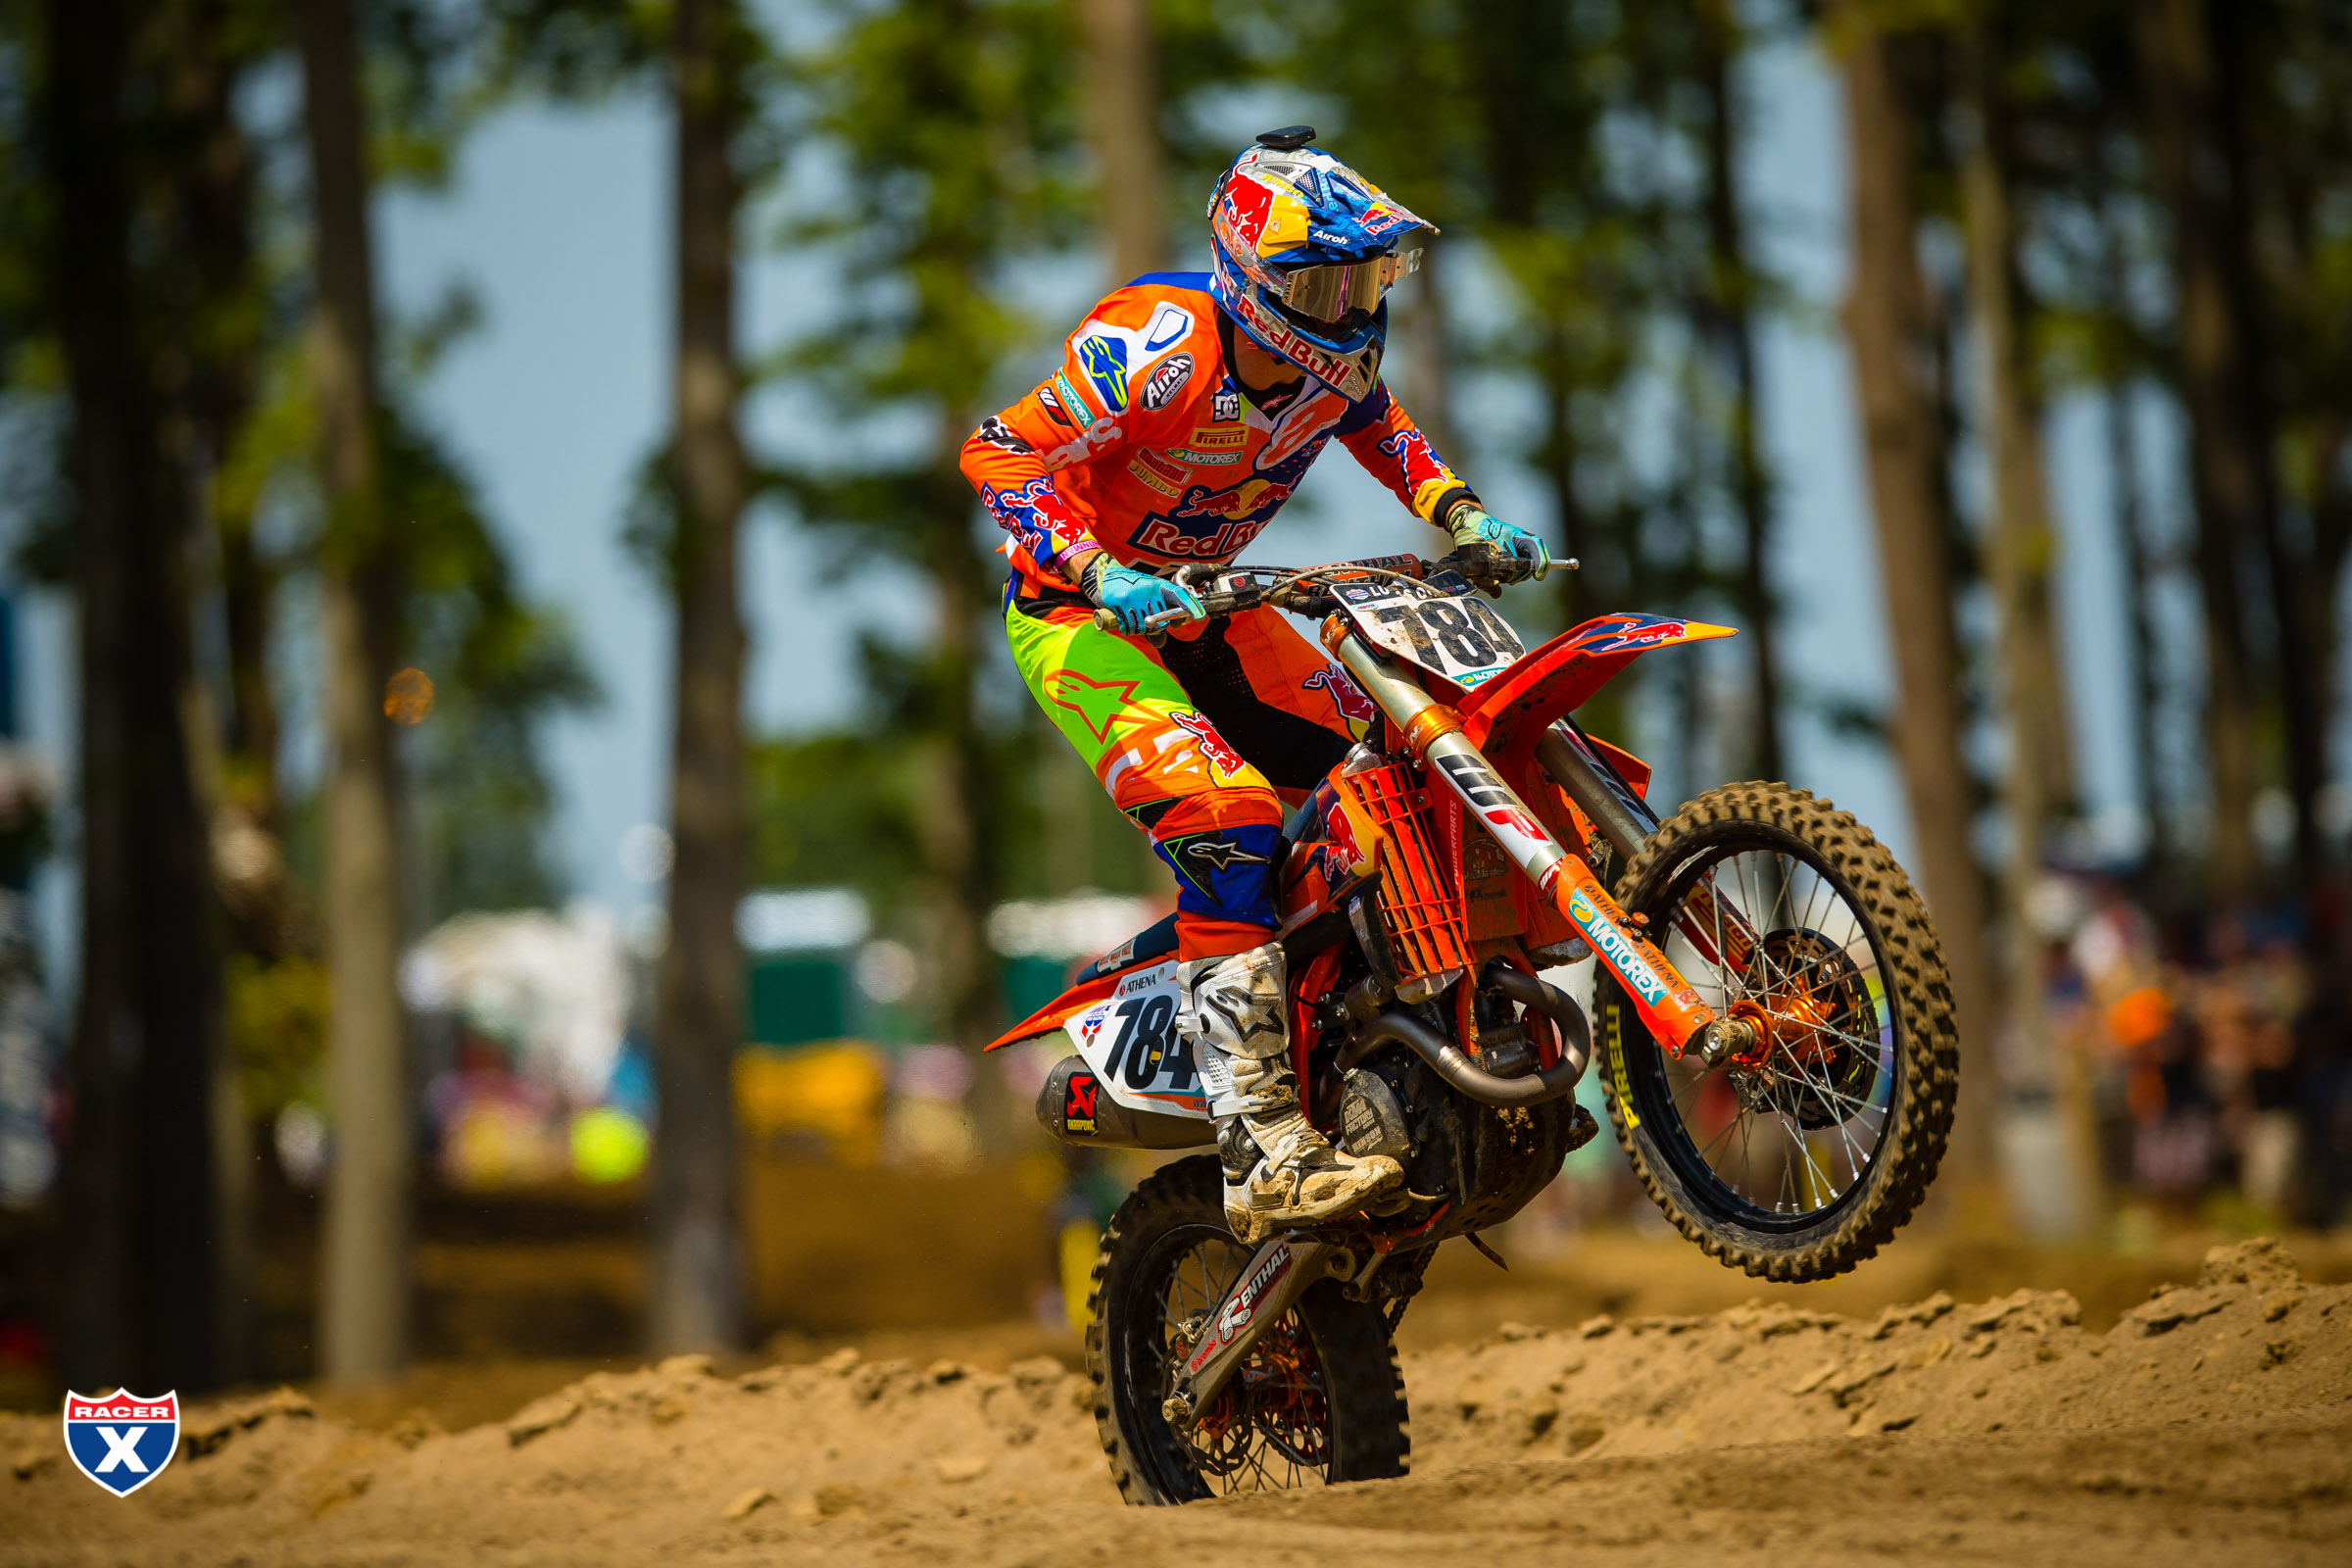 Herlings_MX17_Ironman_JK_1141